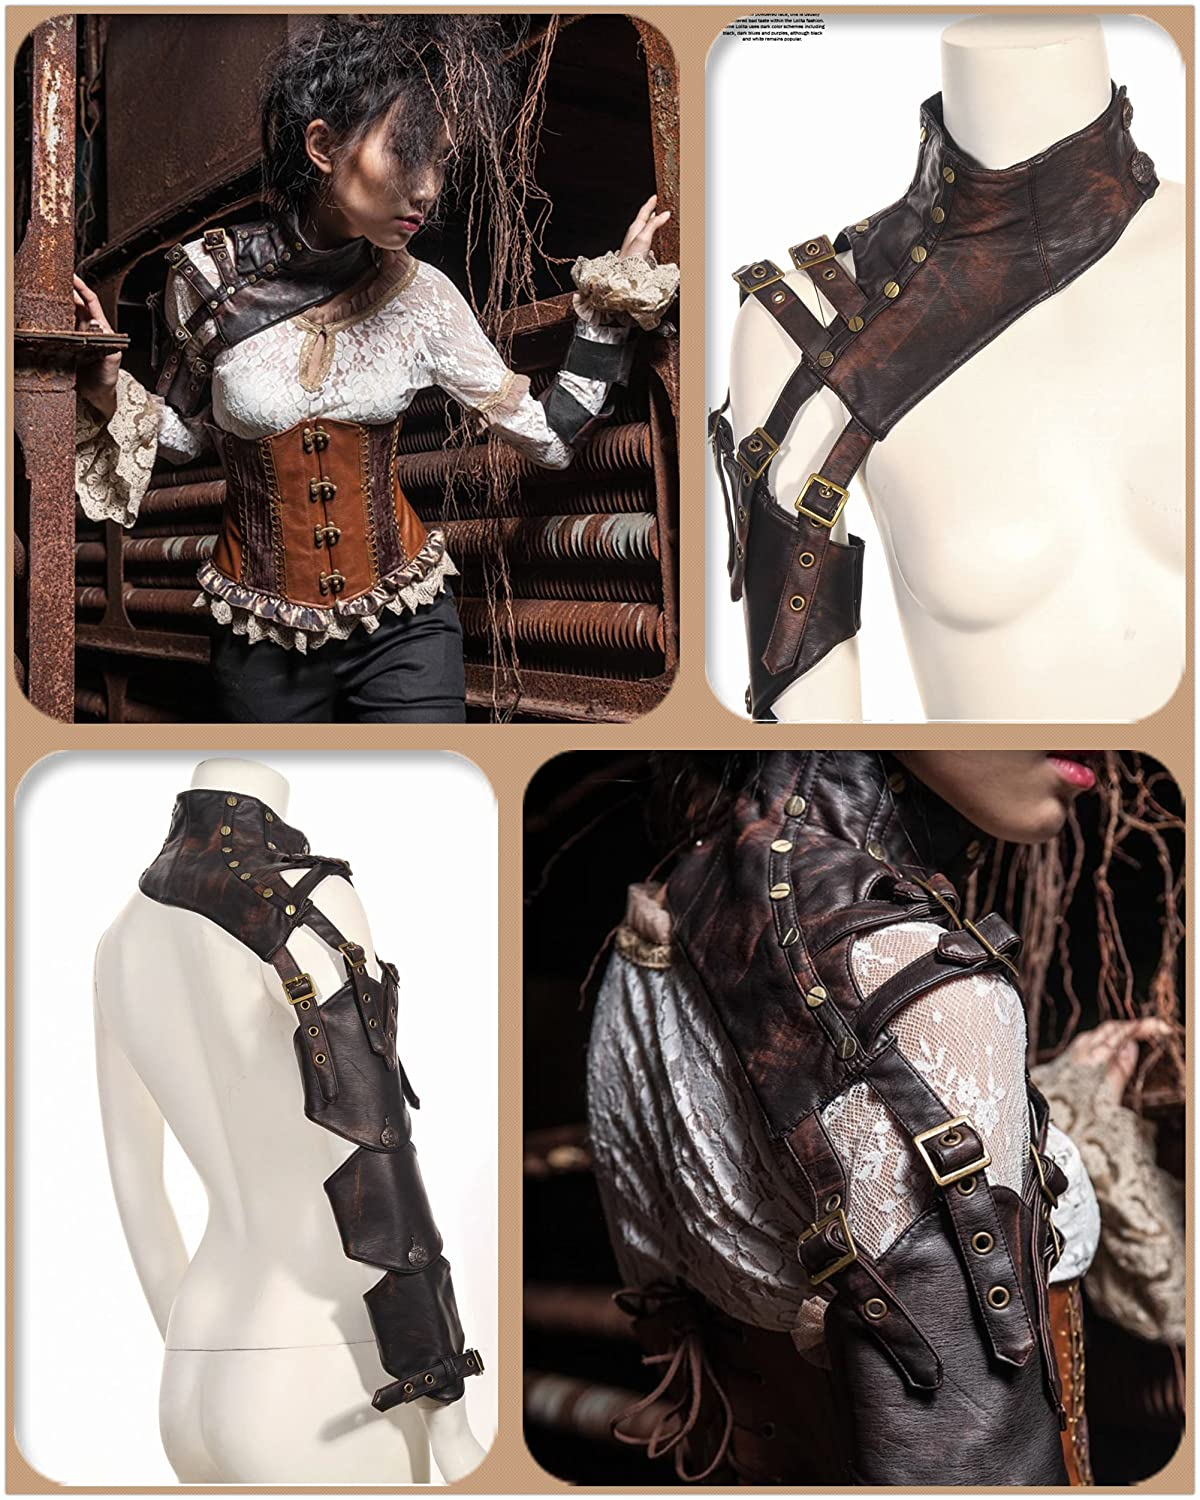 Steampunk Vests and Wraps Steampunk VTG Retro leather arm warmer bolero Shrug Shawl Cape Wraps Top Jacket $69.66 AT vintagedancer.com